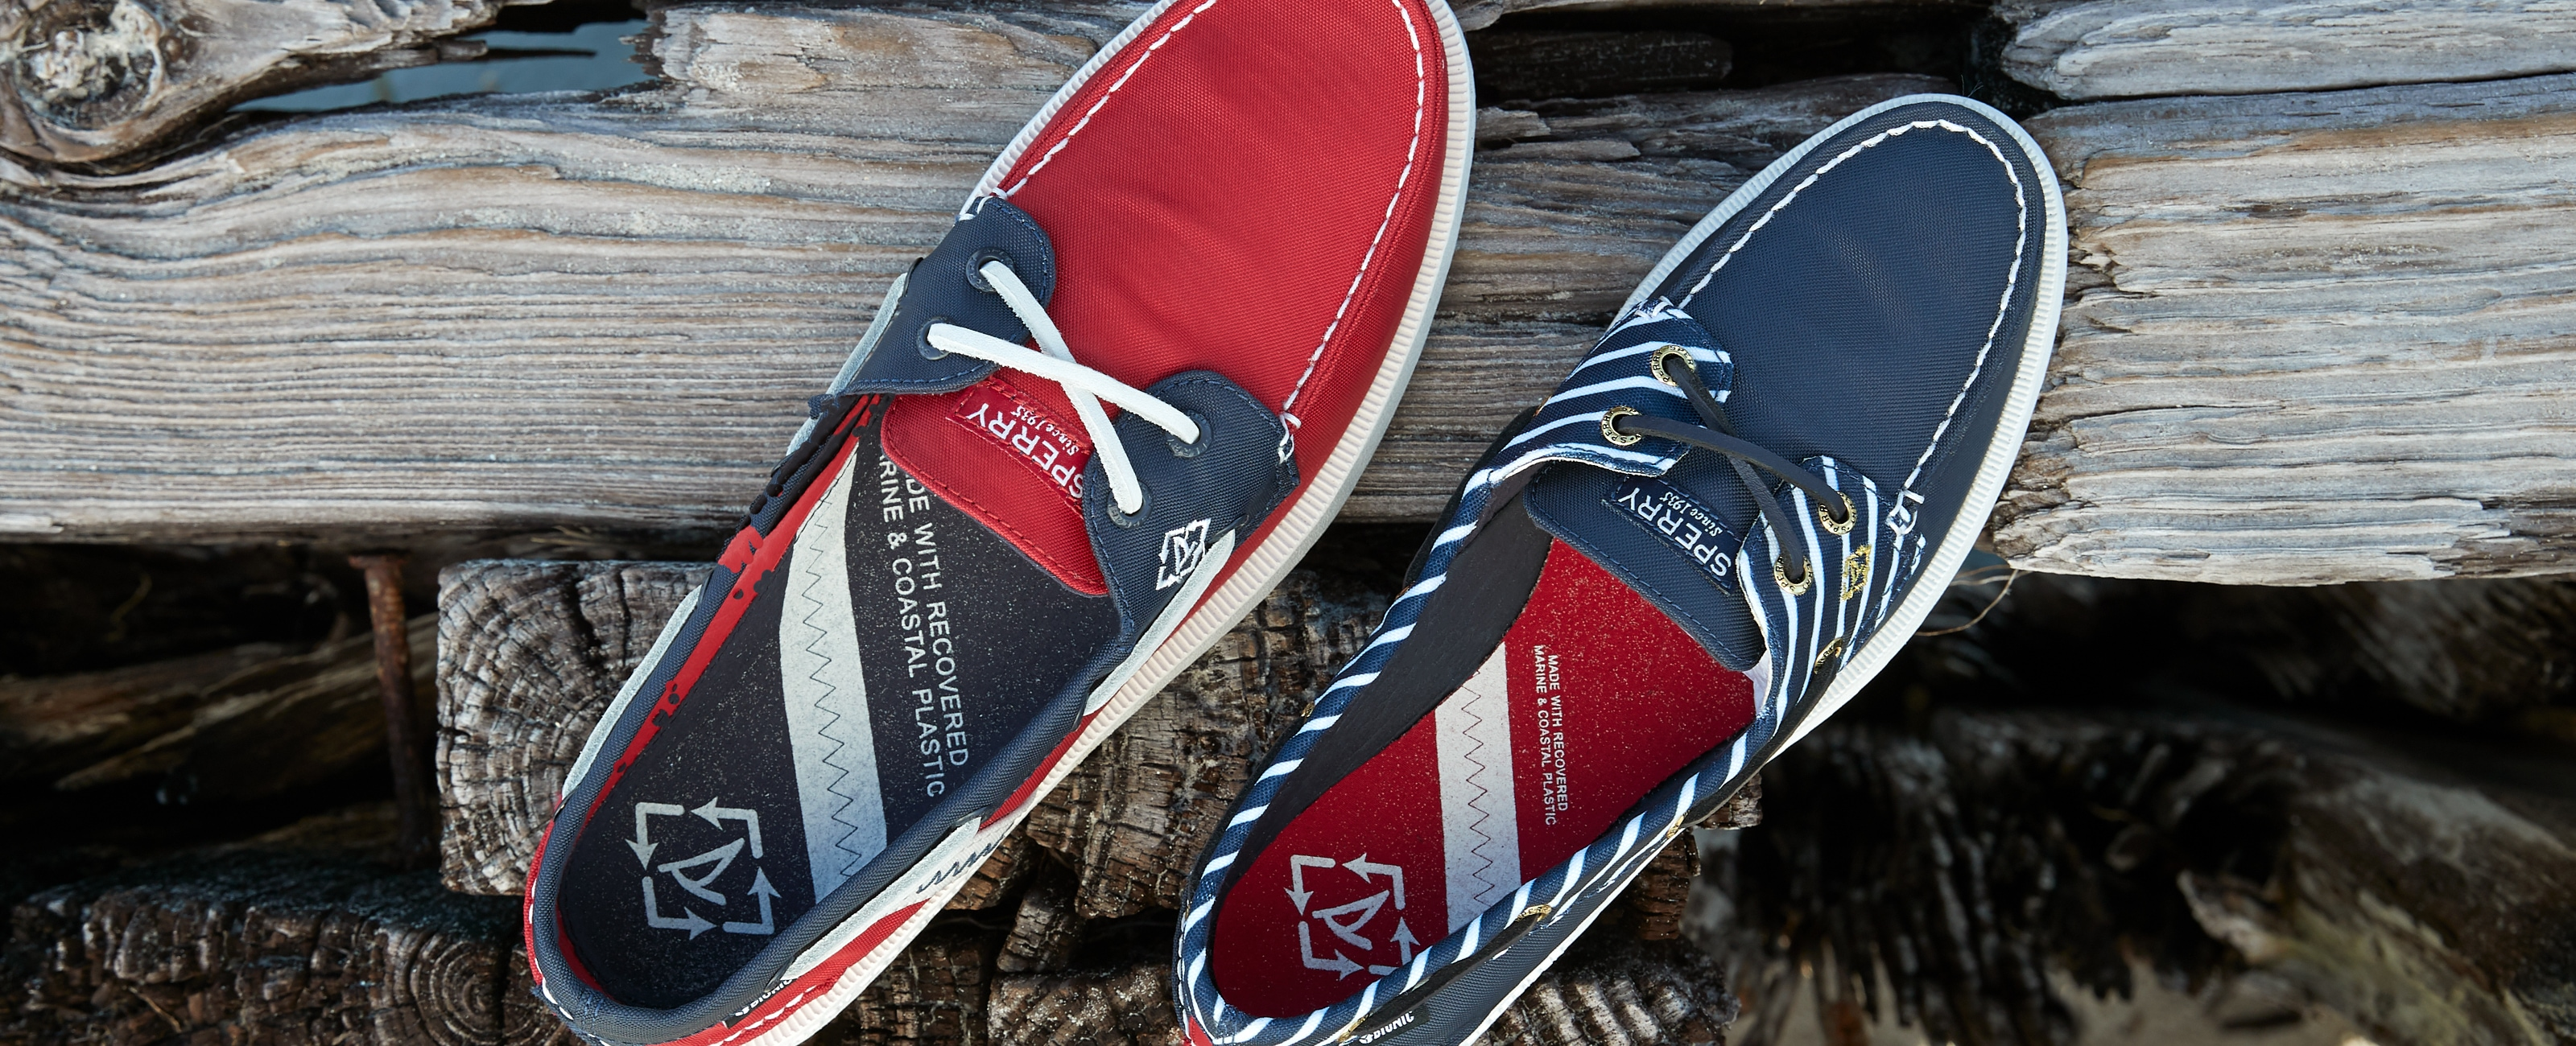 Men's and Women's Authentic Original BIONIC Boat Shoes.